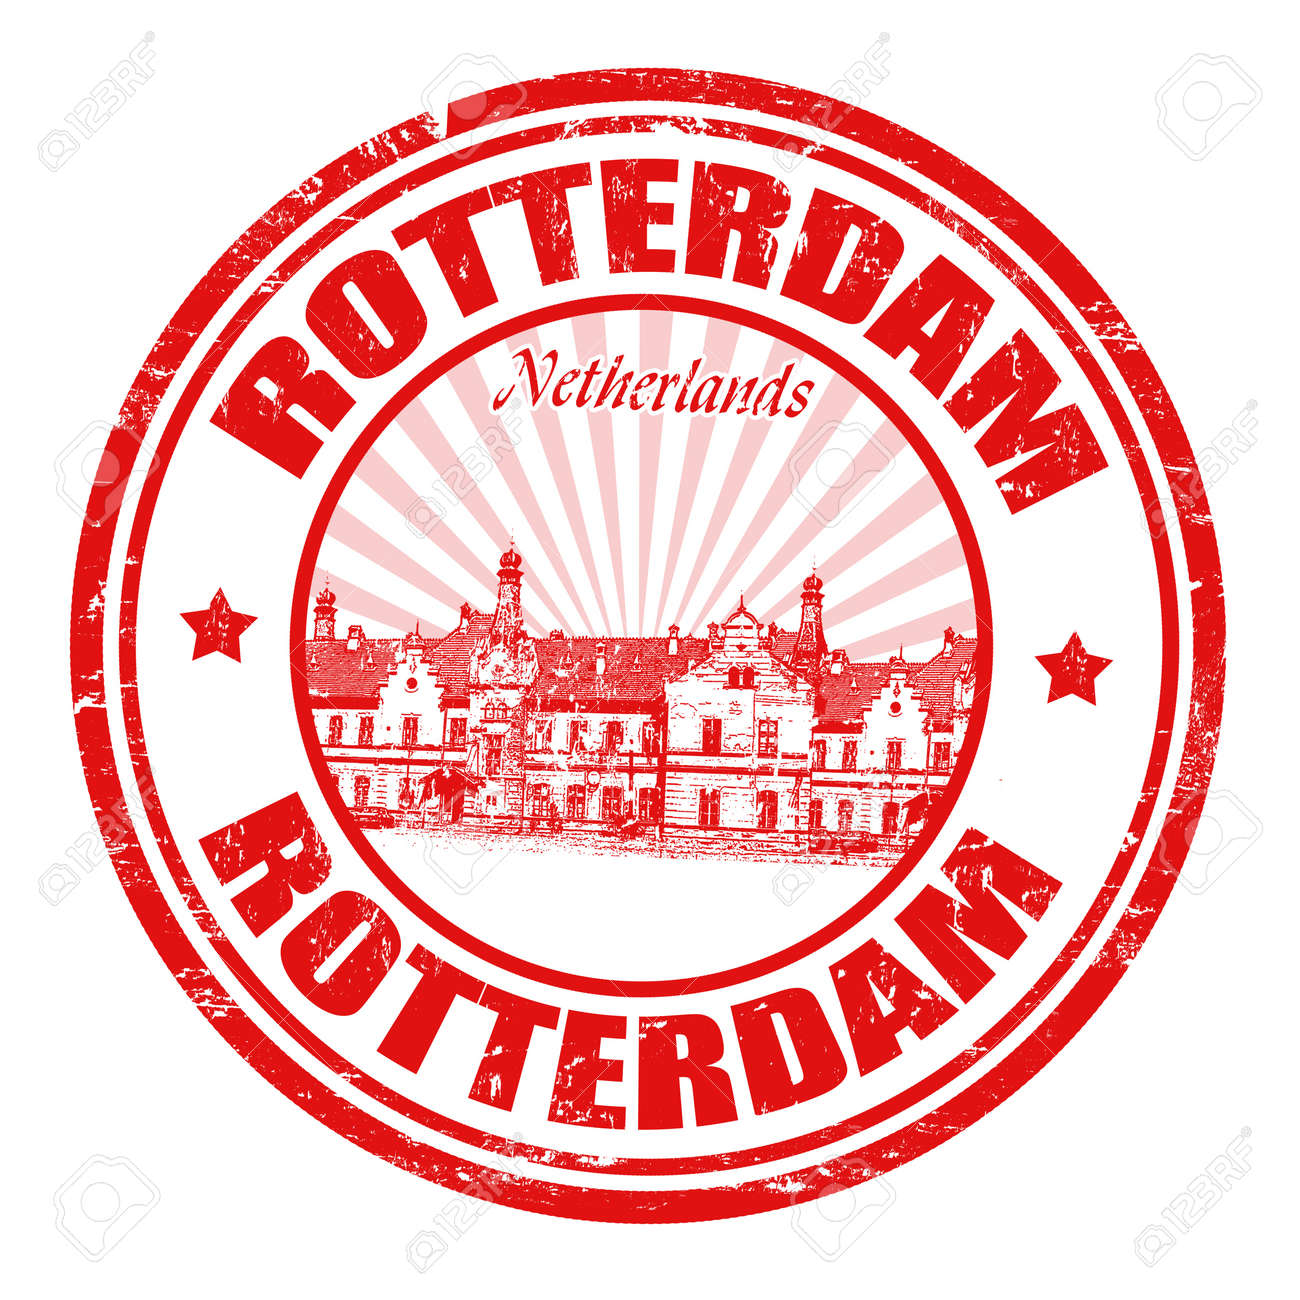 Red grunge rubber stamp with the name of Rotterdam city from Netherlands written inside the stamp Stock Vector - 20989323